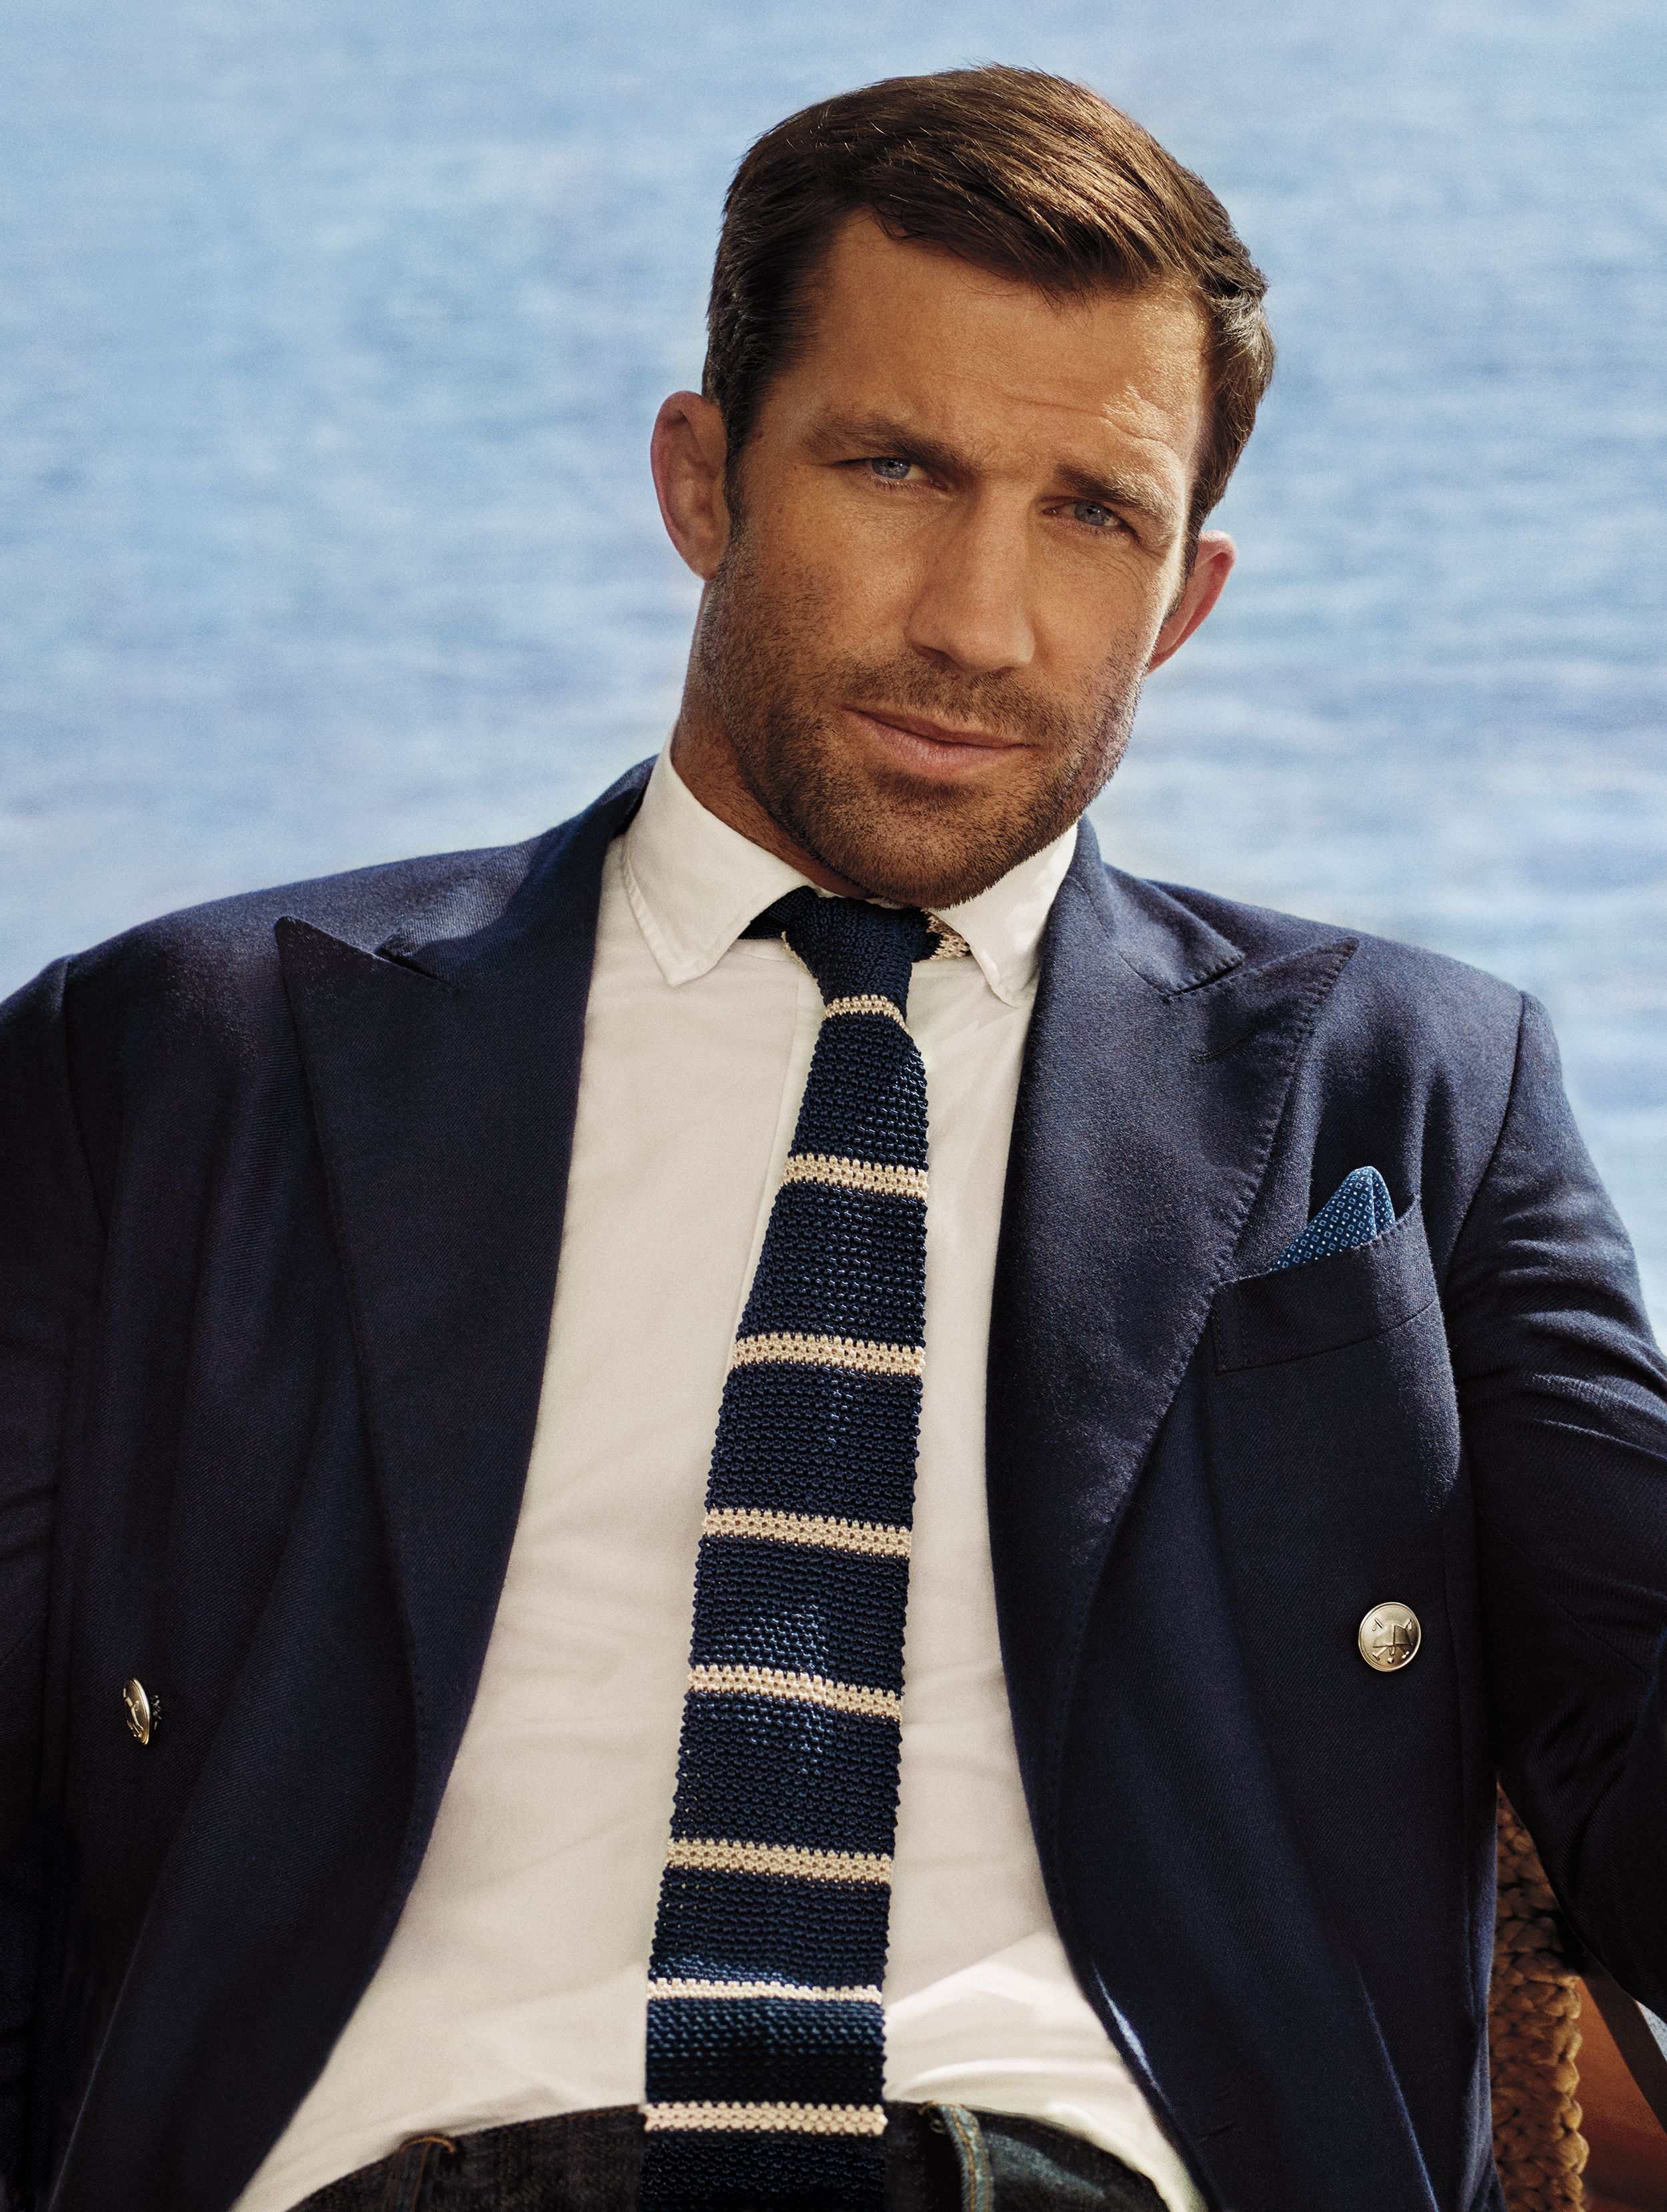 ce073763 Polo Ralph Lauren is excited to announce Luke Rockhold as the new ...